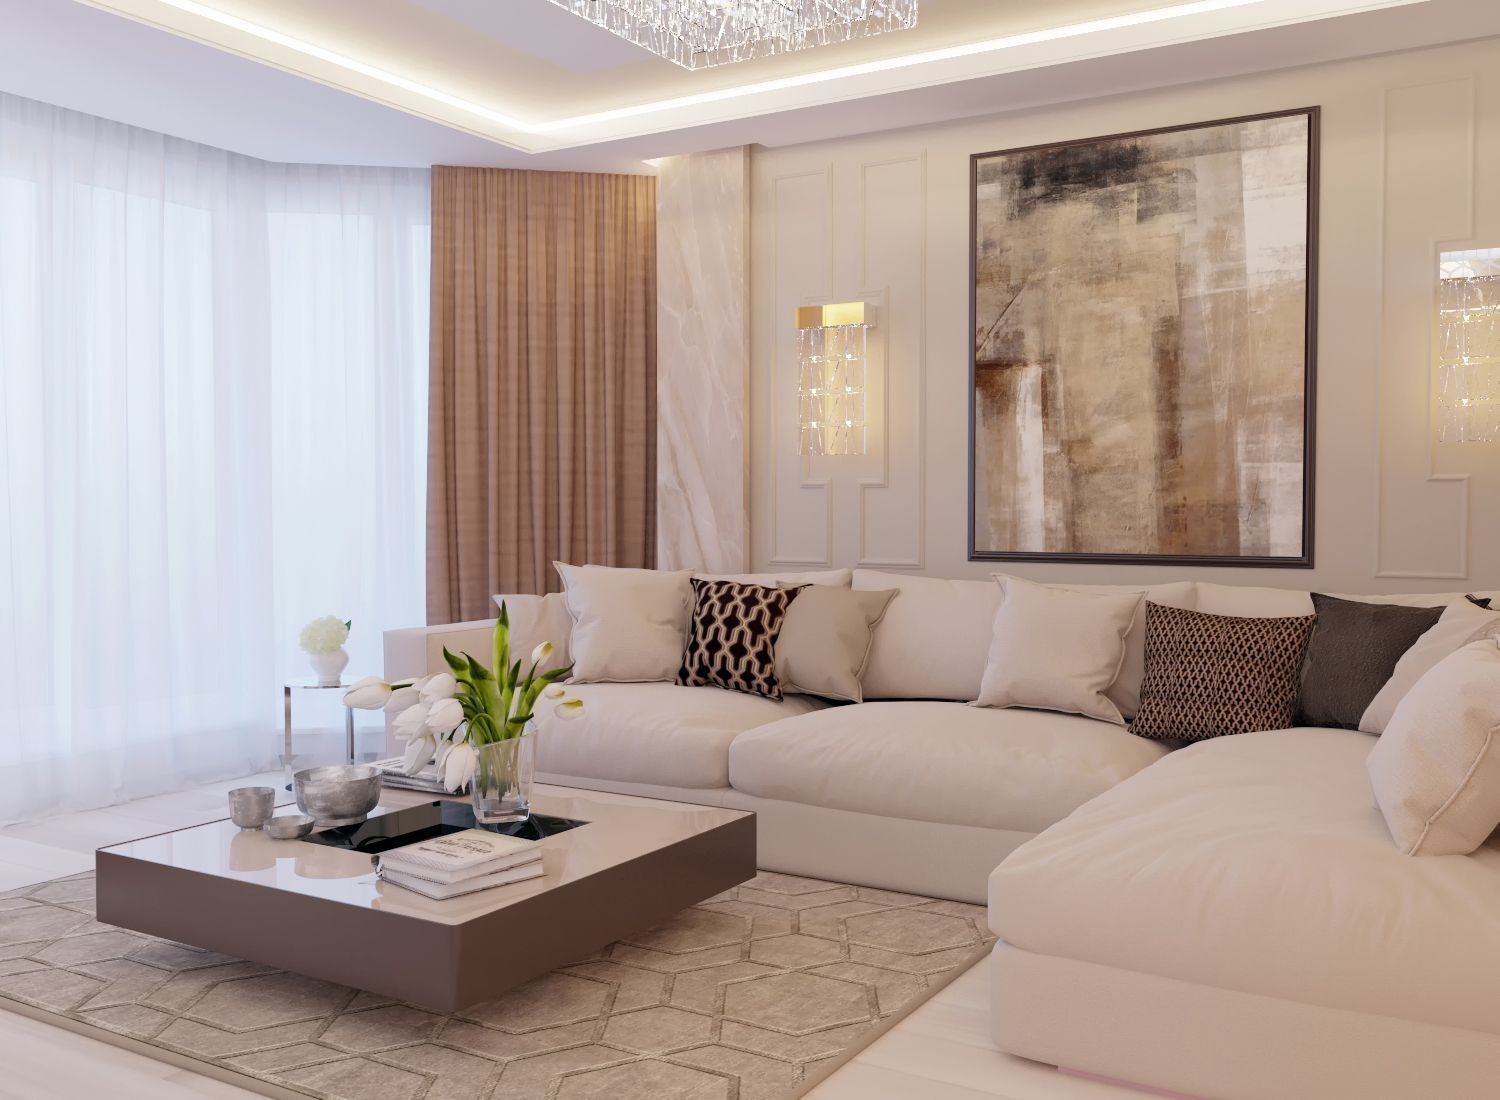 34 Excellent Contemporary Living Room Decor Idea Try for You images